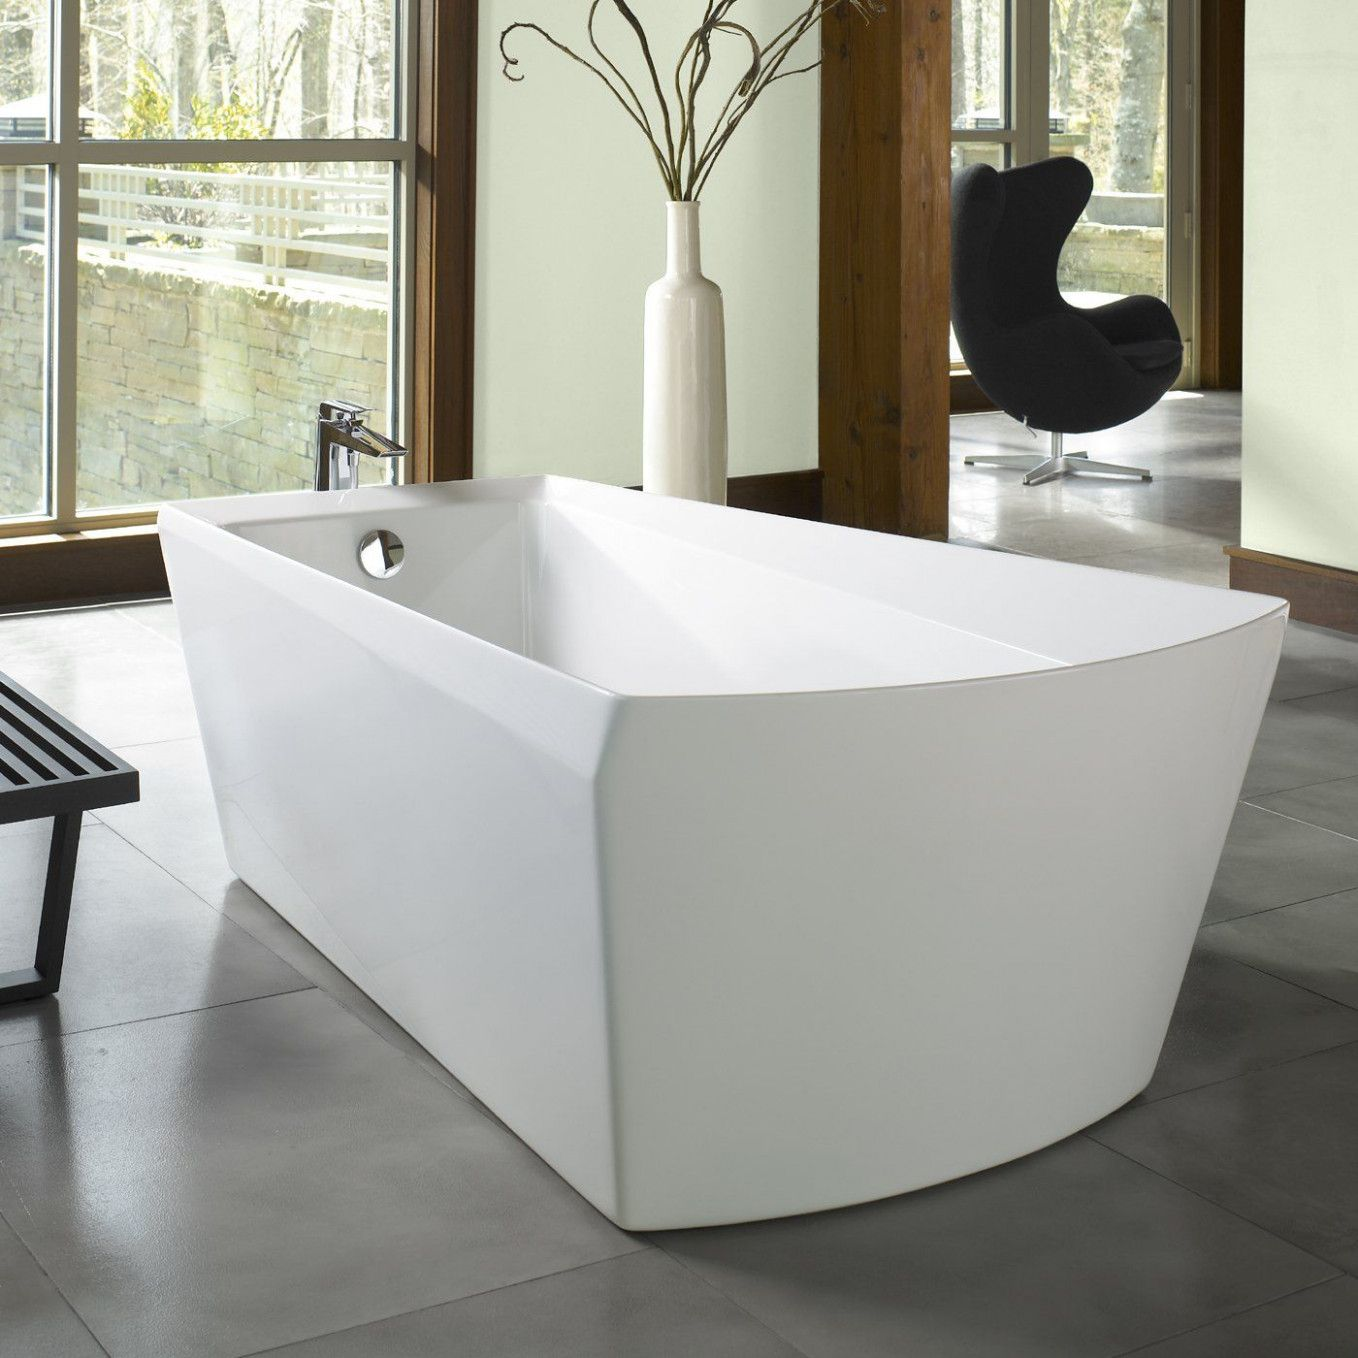 10 Disadvantages Of Bathtub Ideas Cheap Tubs And How You Can ...